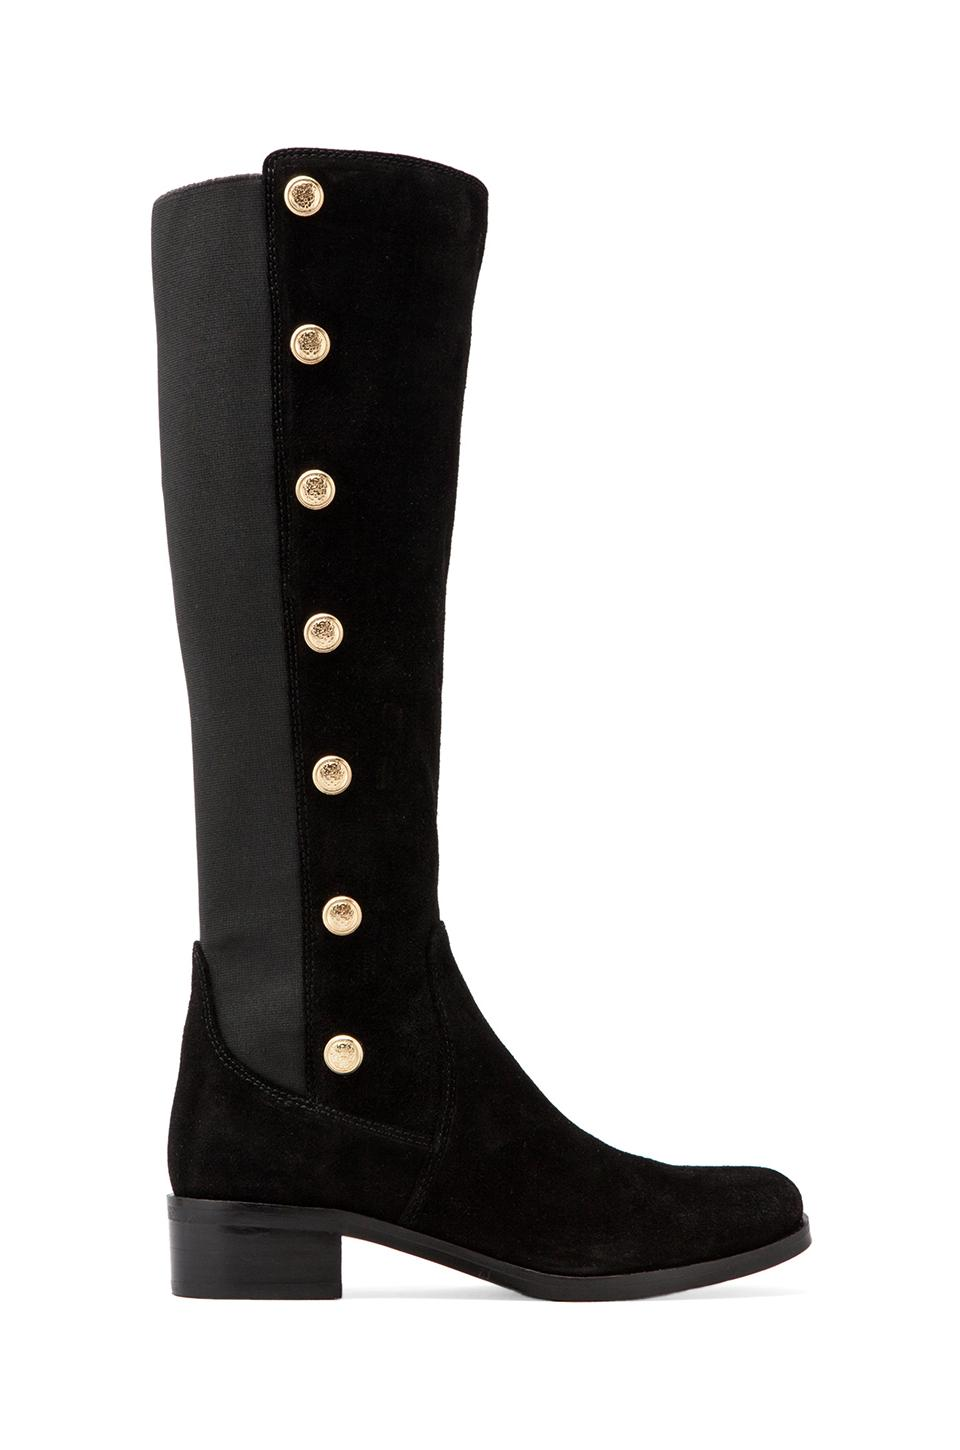 Vince Camuto Vacilla Boot in Black